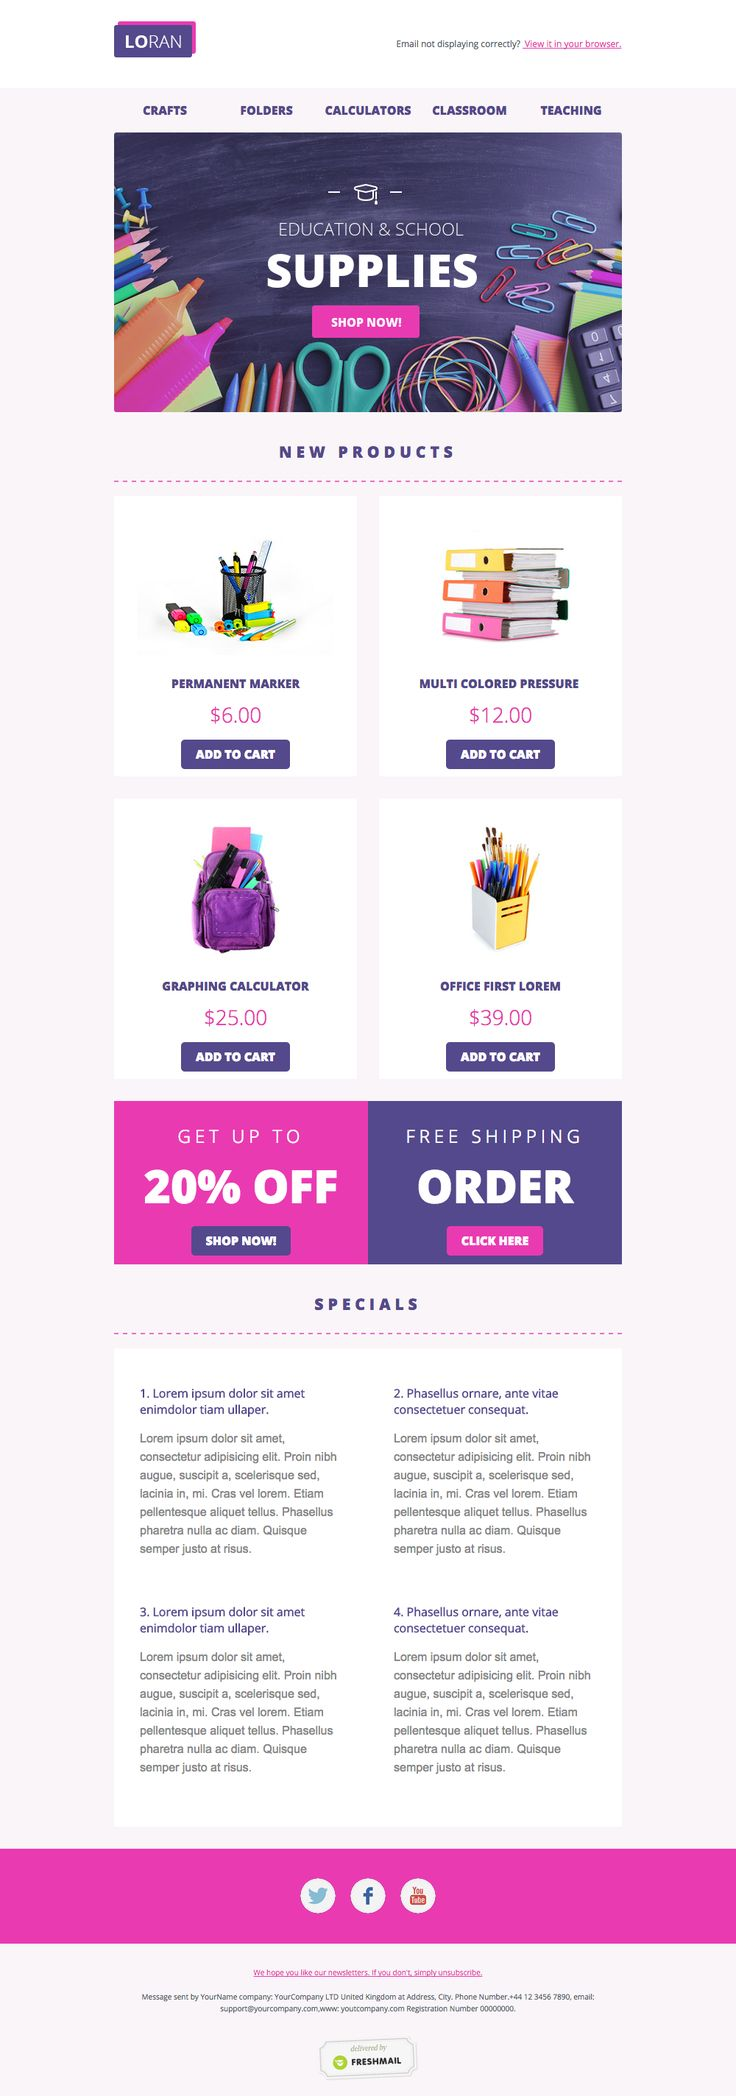 office depot e commerce newsletter design ideas examples for your inspiration - Newsletter Design Ideas